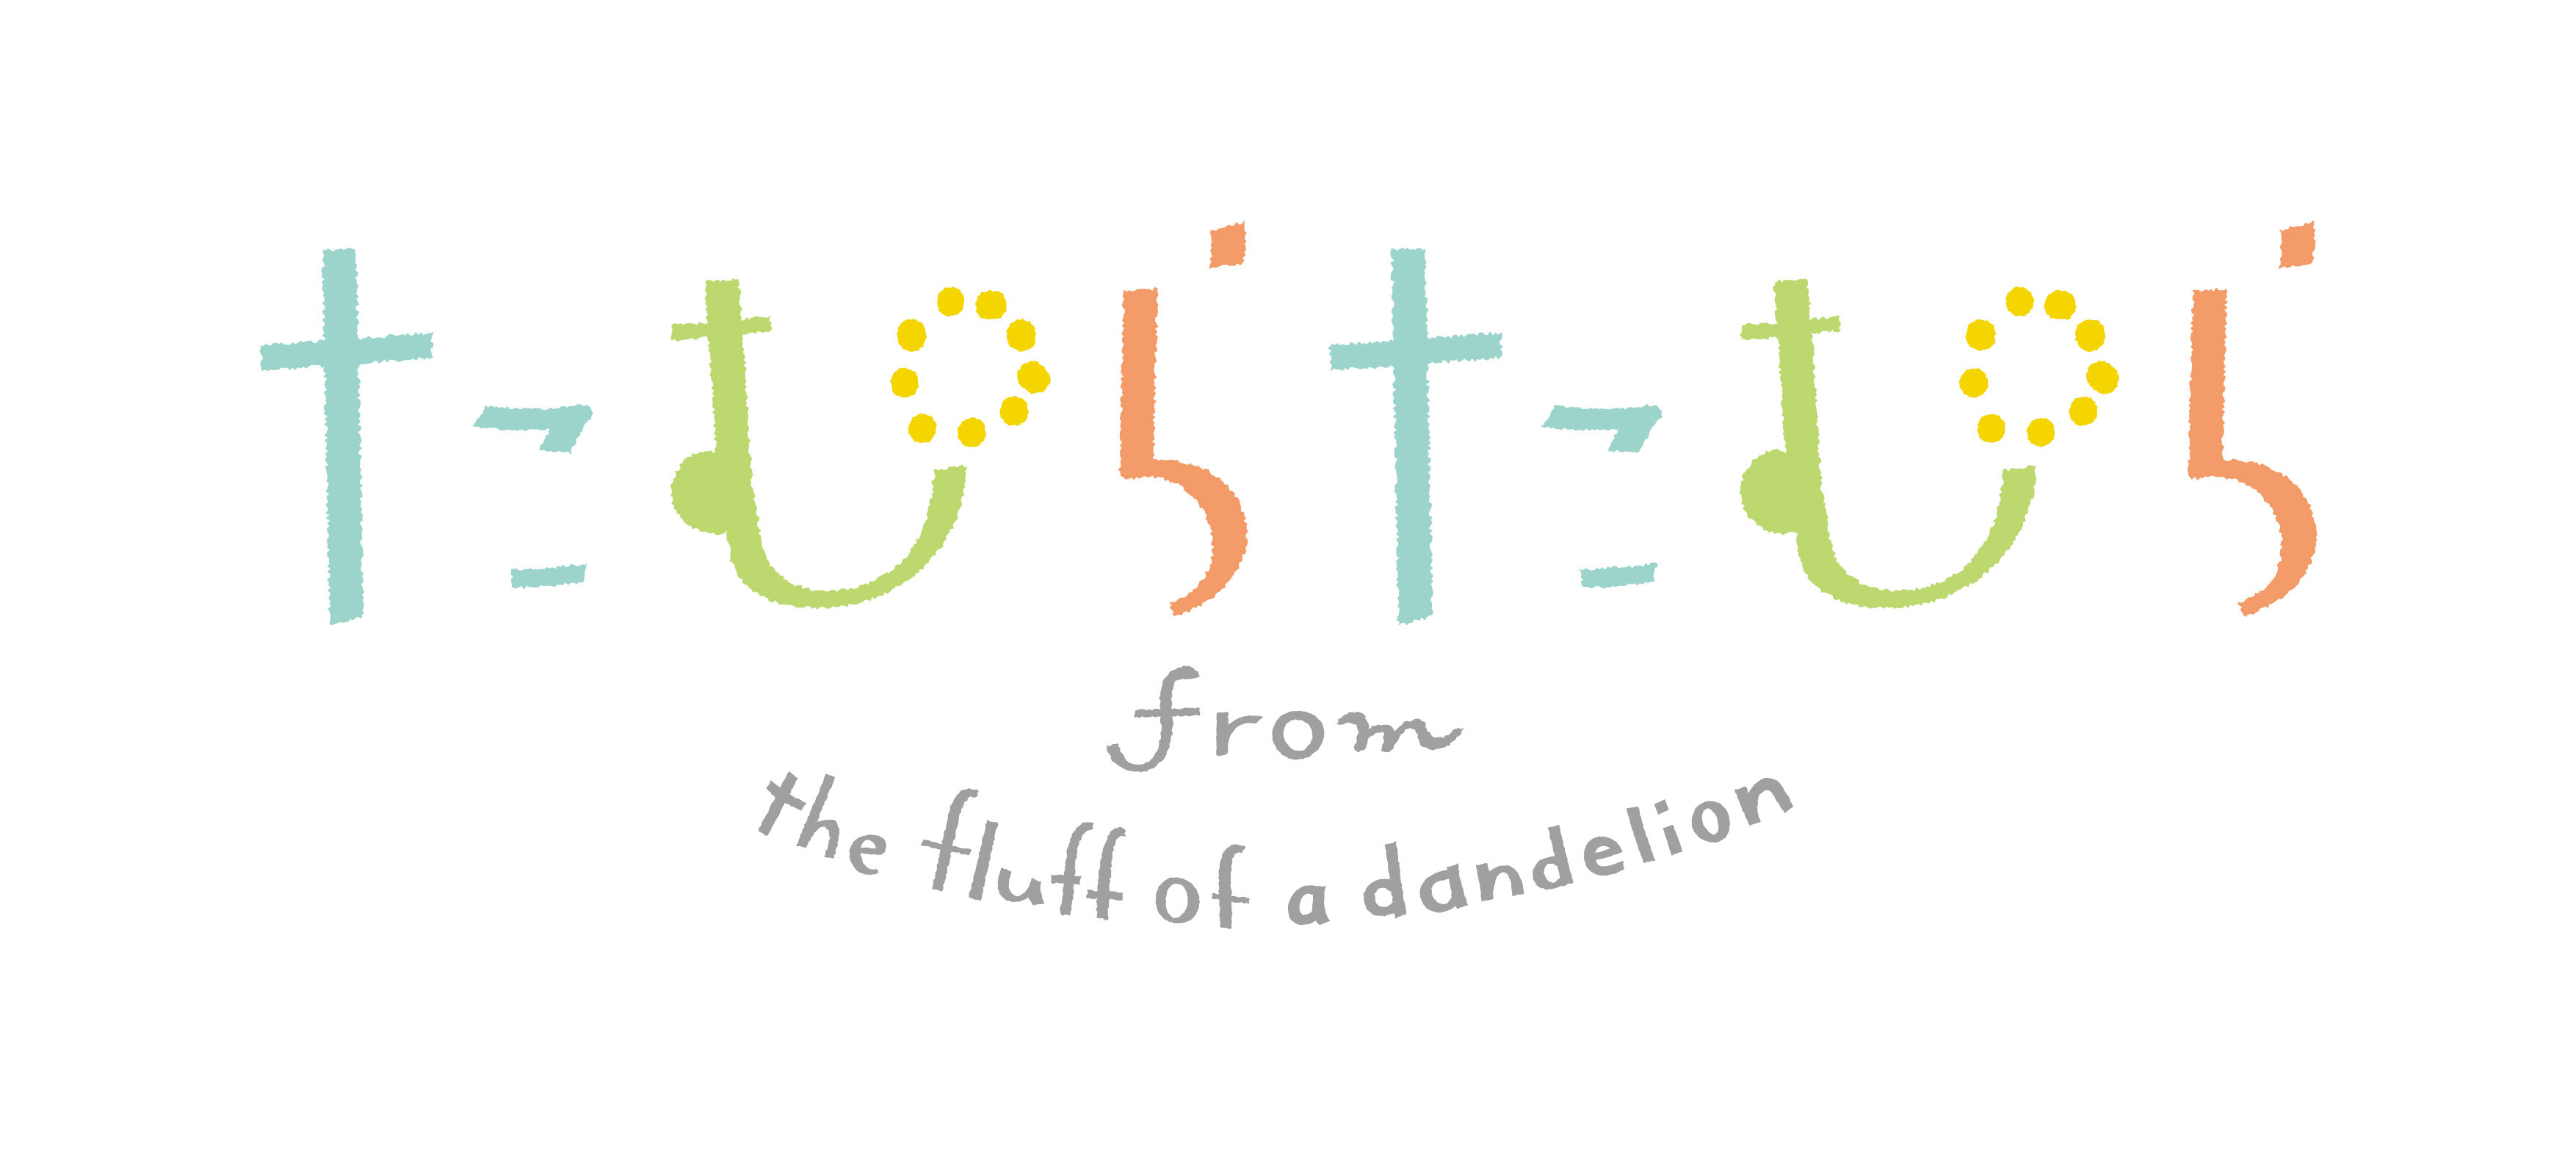 たむらたむら from 〜the fluff of a dandelion〜